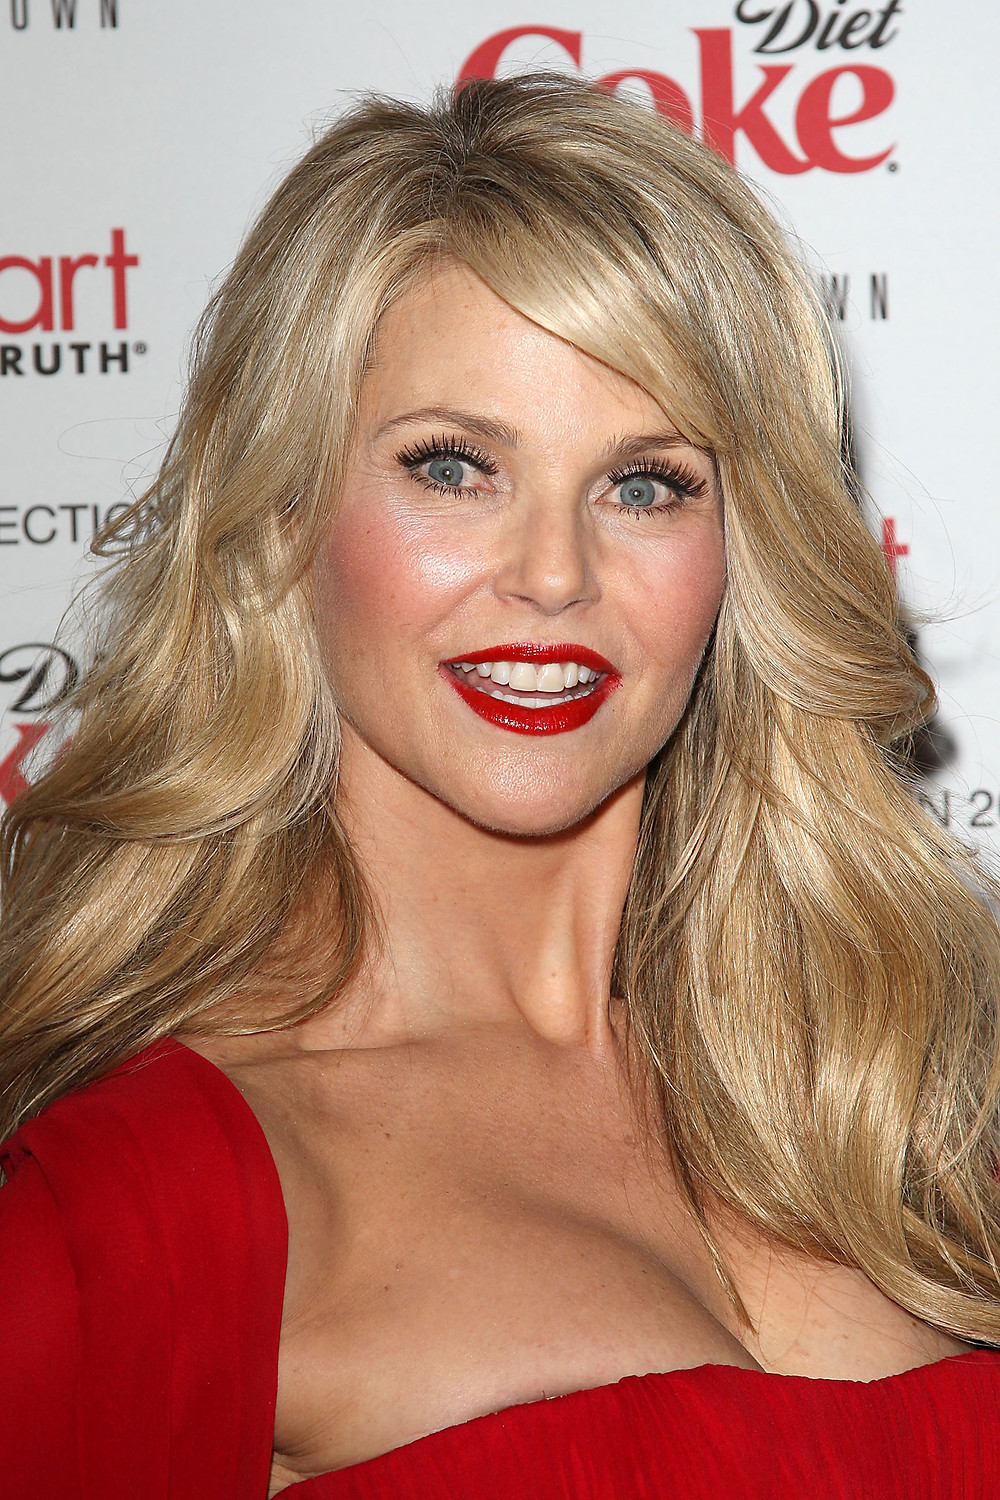 Christie-Brinkley-28dt1jg.jpg